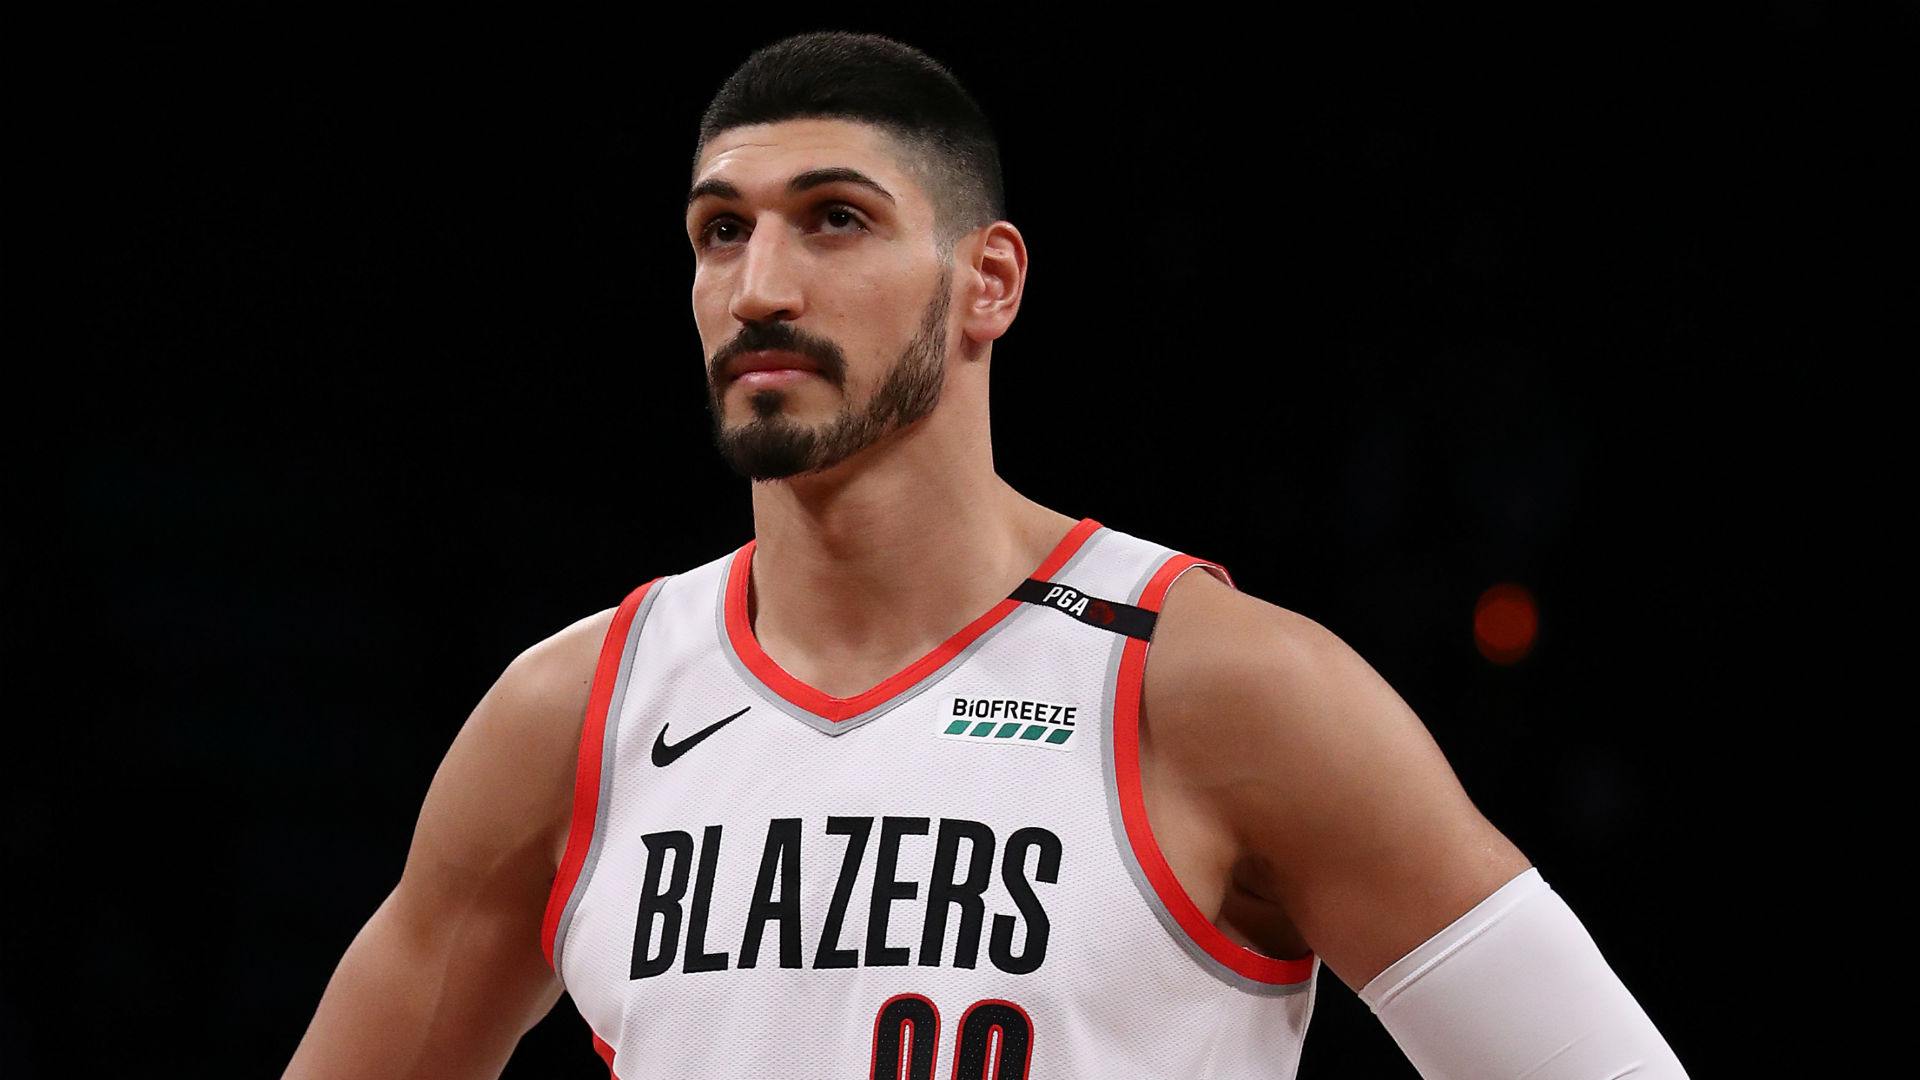 NBA free agency news: Enes Kanter signs 2-year deal with Celtics